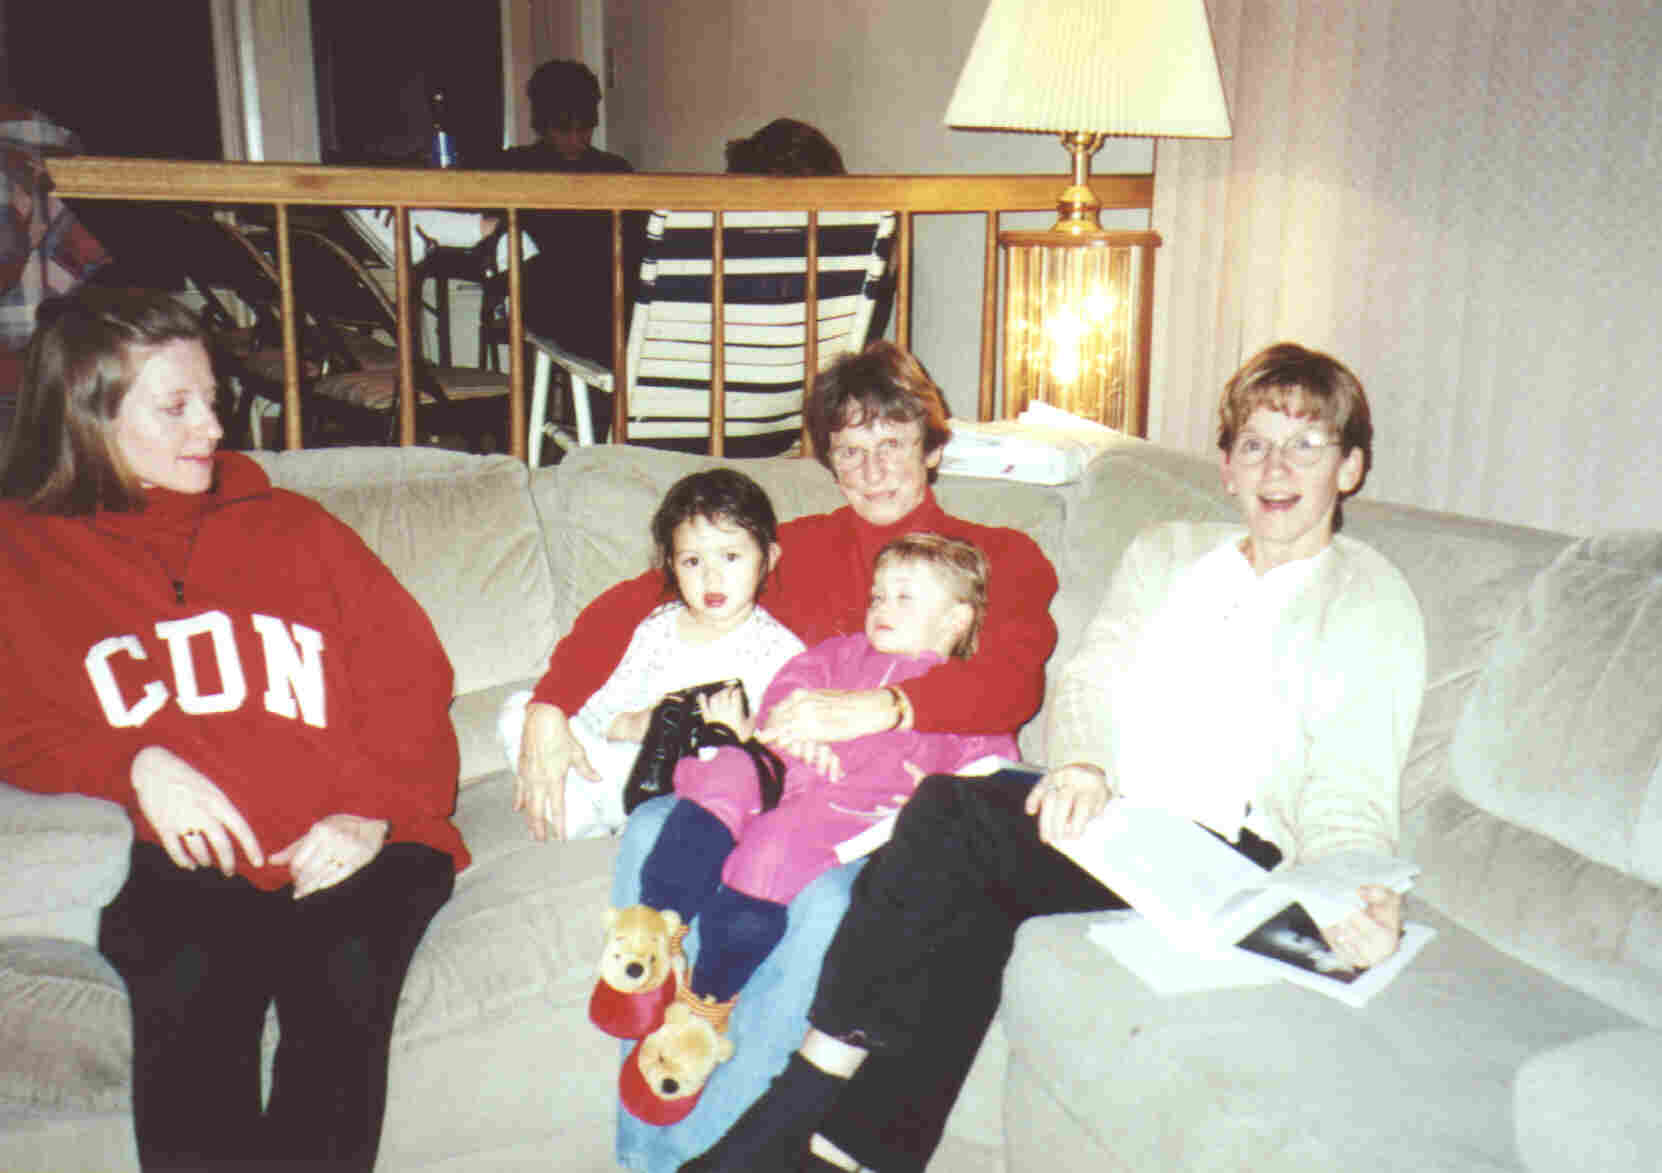 Christine, Pam, Jeannie and kids